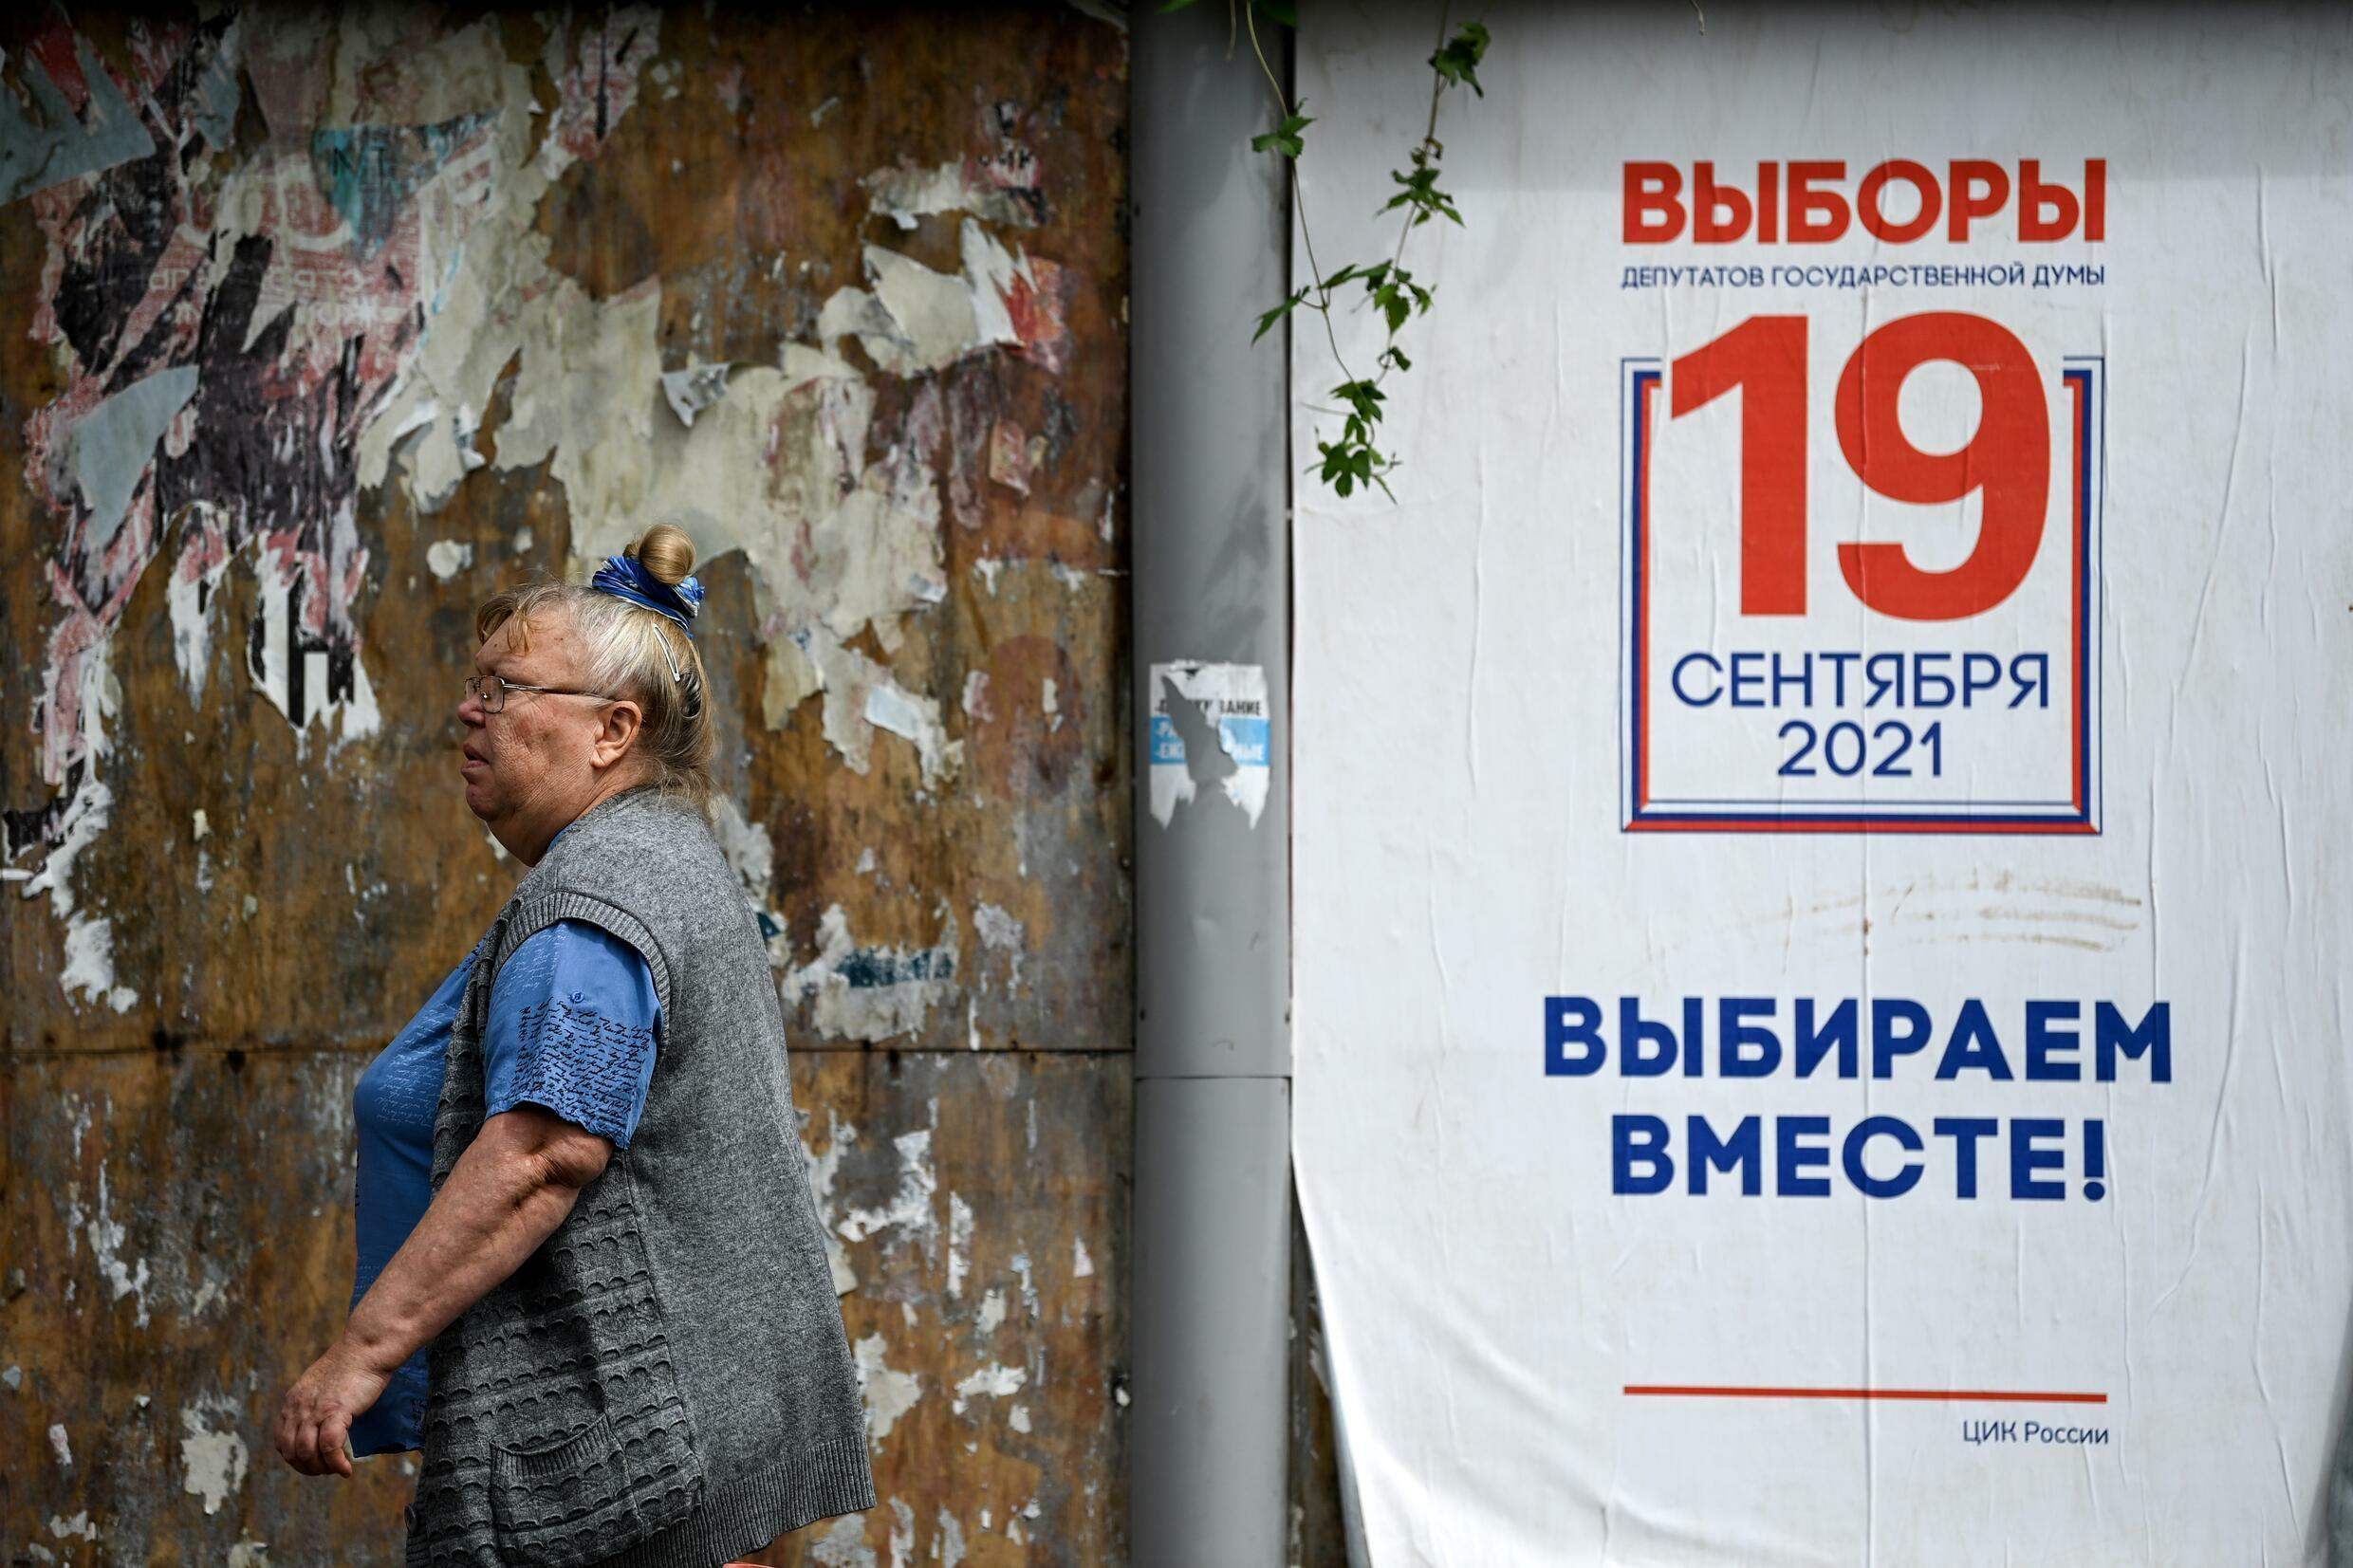 President Putin's United Russia party is widely expected to win this weekend's elections